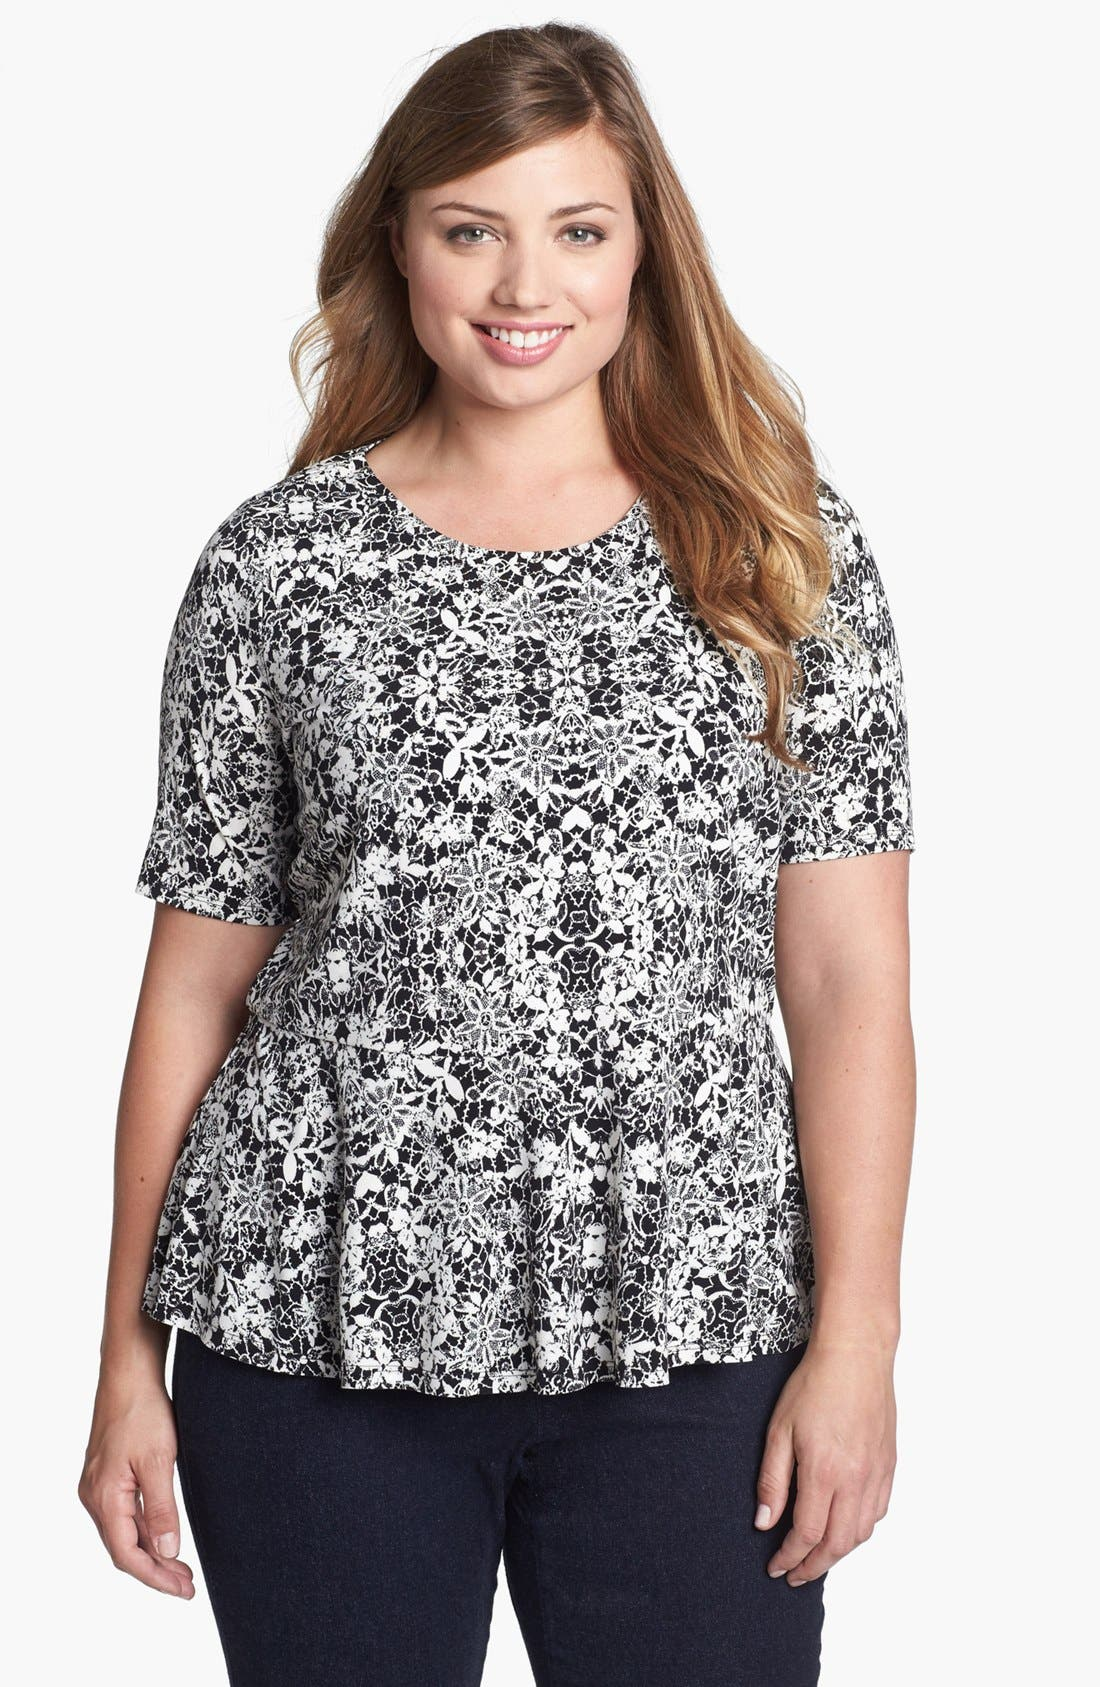 Alternate Image 1 Selected - Vince Camuto Lace Print Peplum Top (Plus Size)